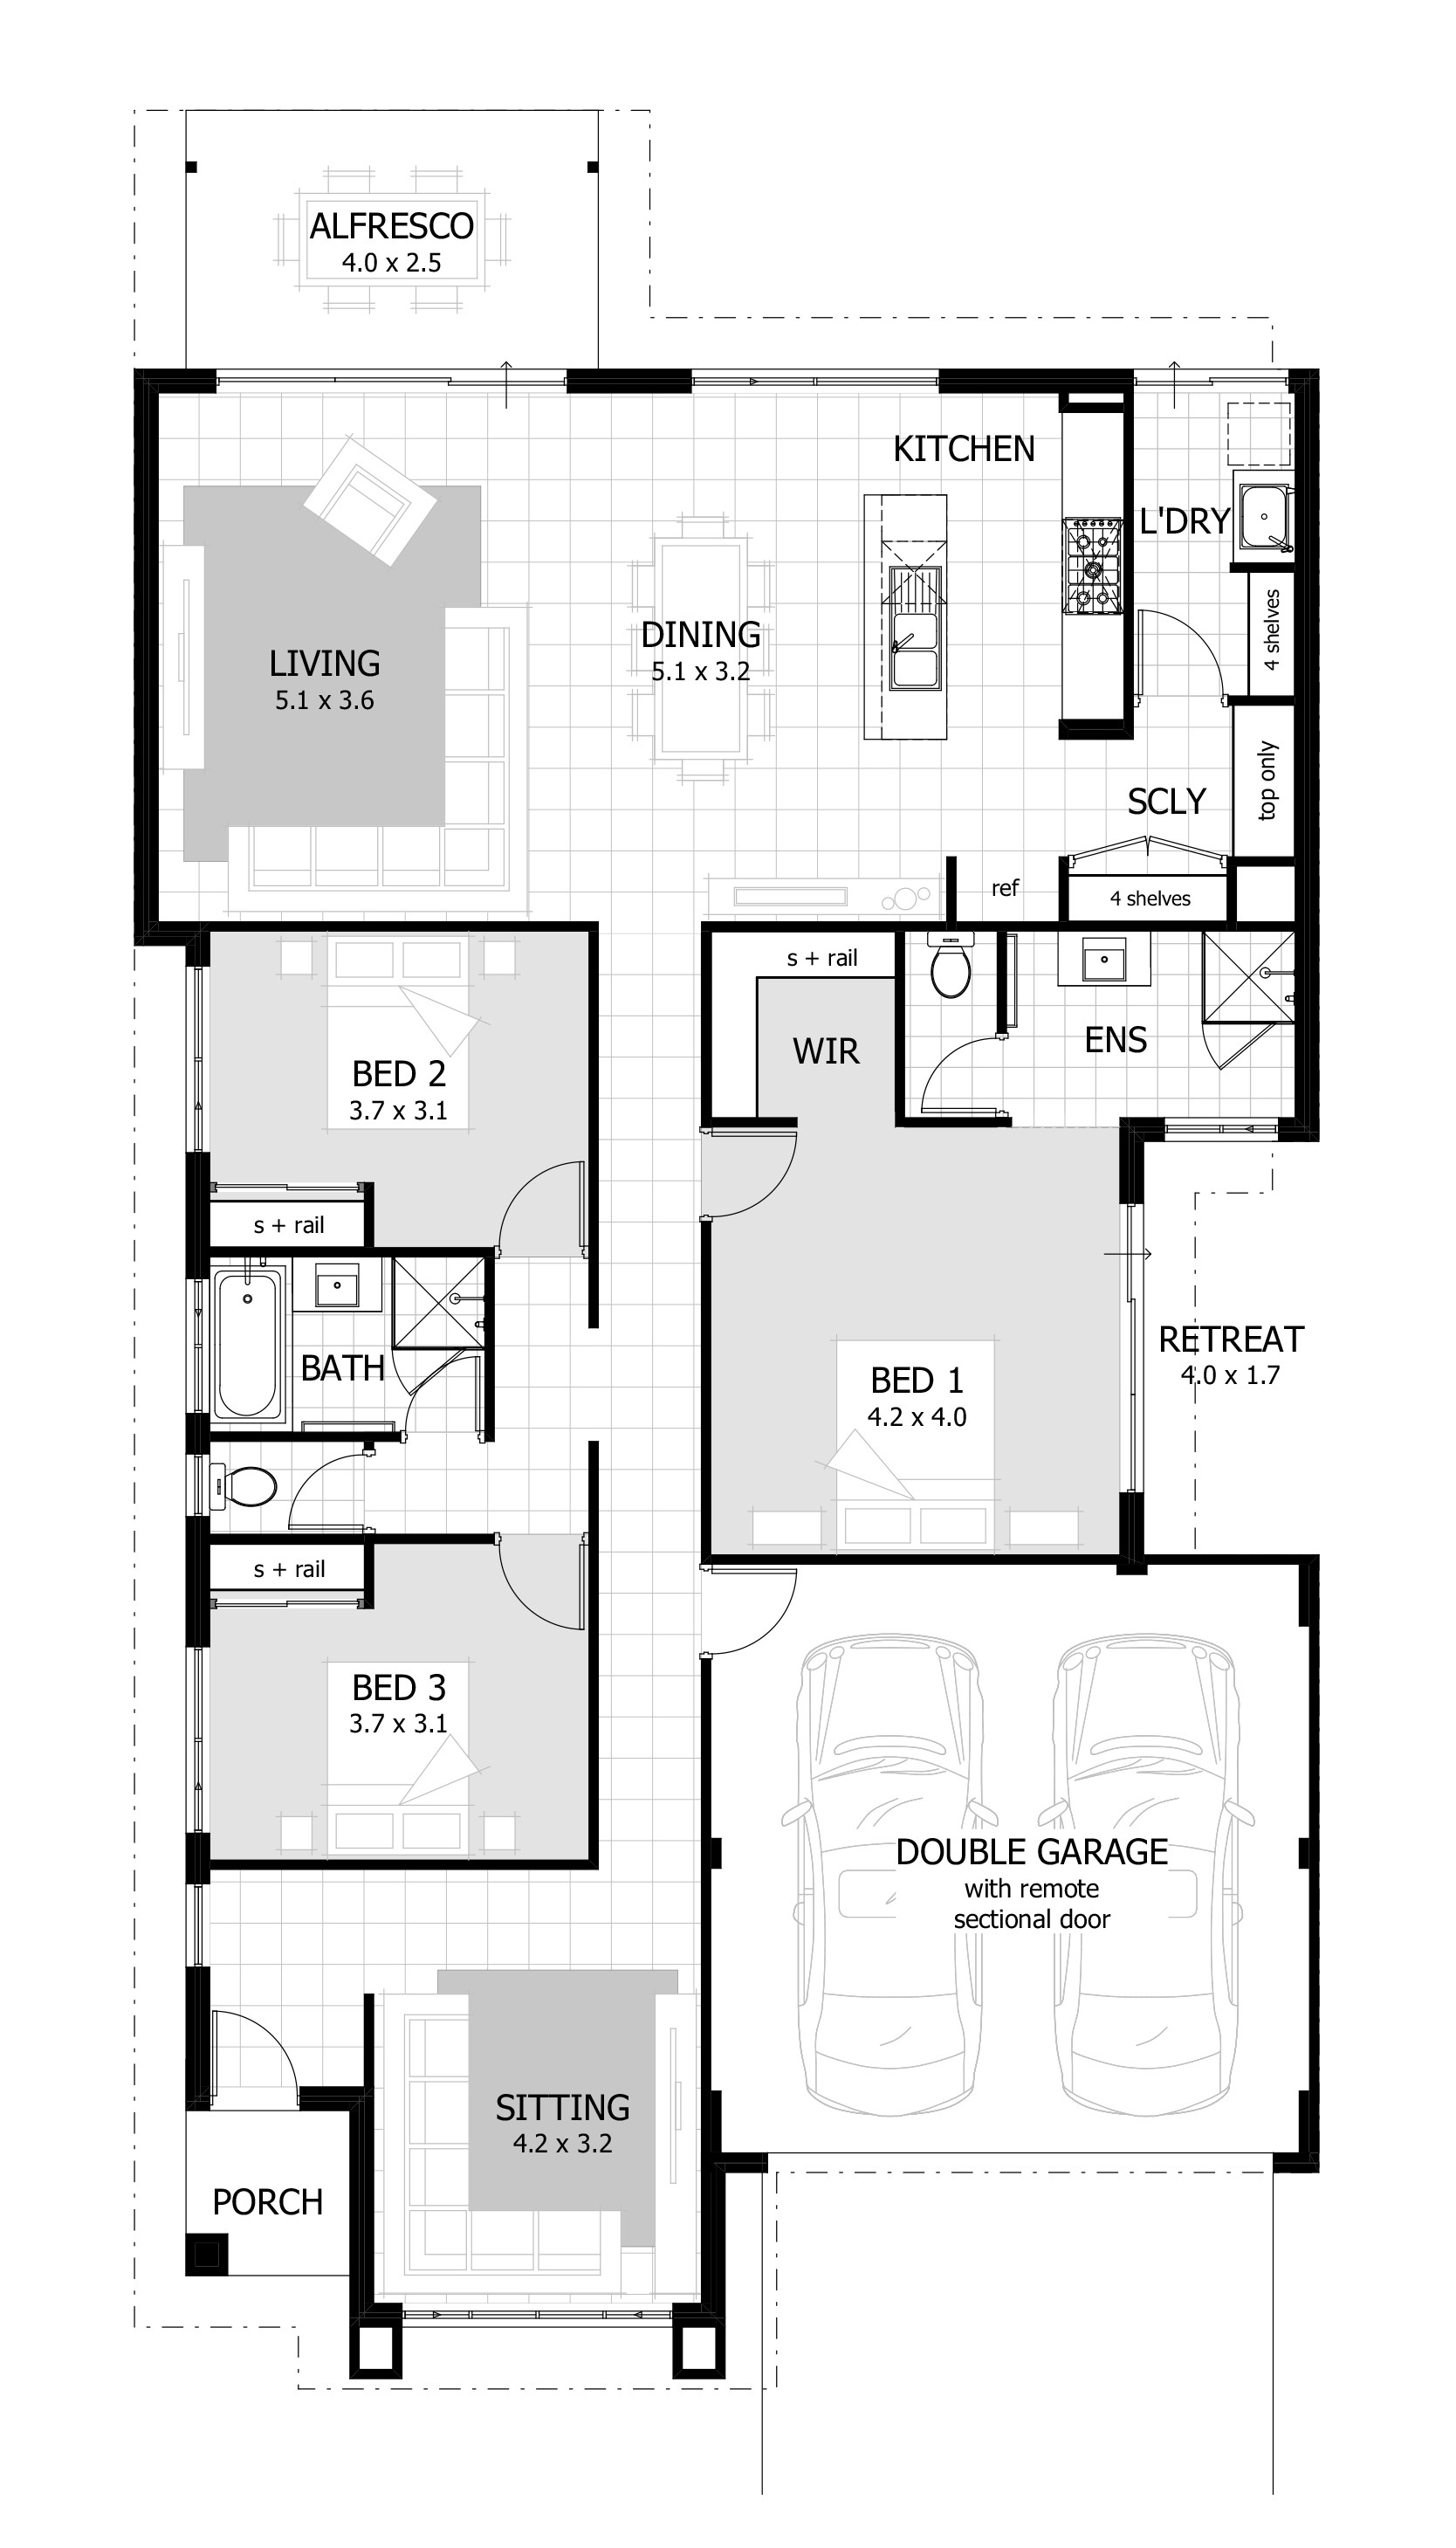 Best ideas about 3 Bedroom Floor Plans . Save or Pin 3 Bedroom House Plans & Home Designs Now.